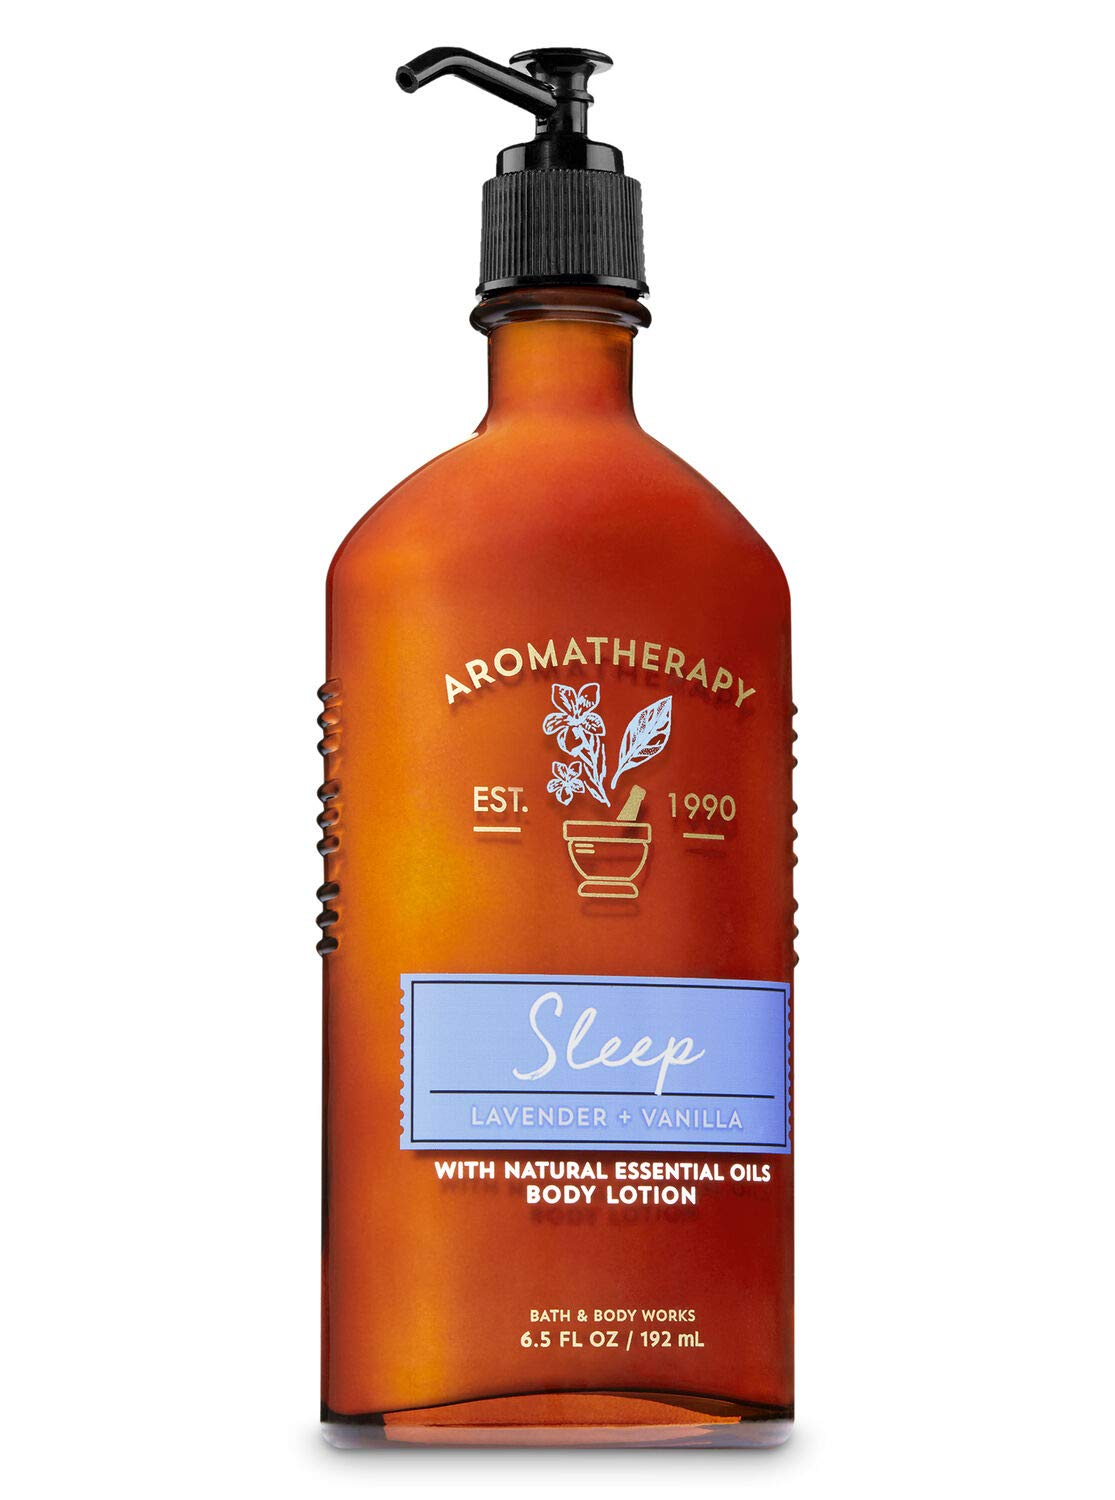 Bath & Body Works Aromatherapy Sleep - Lavender + Vanilla Body Lotion, 6.5 Fl Oz